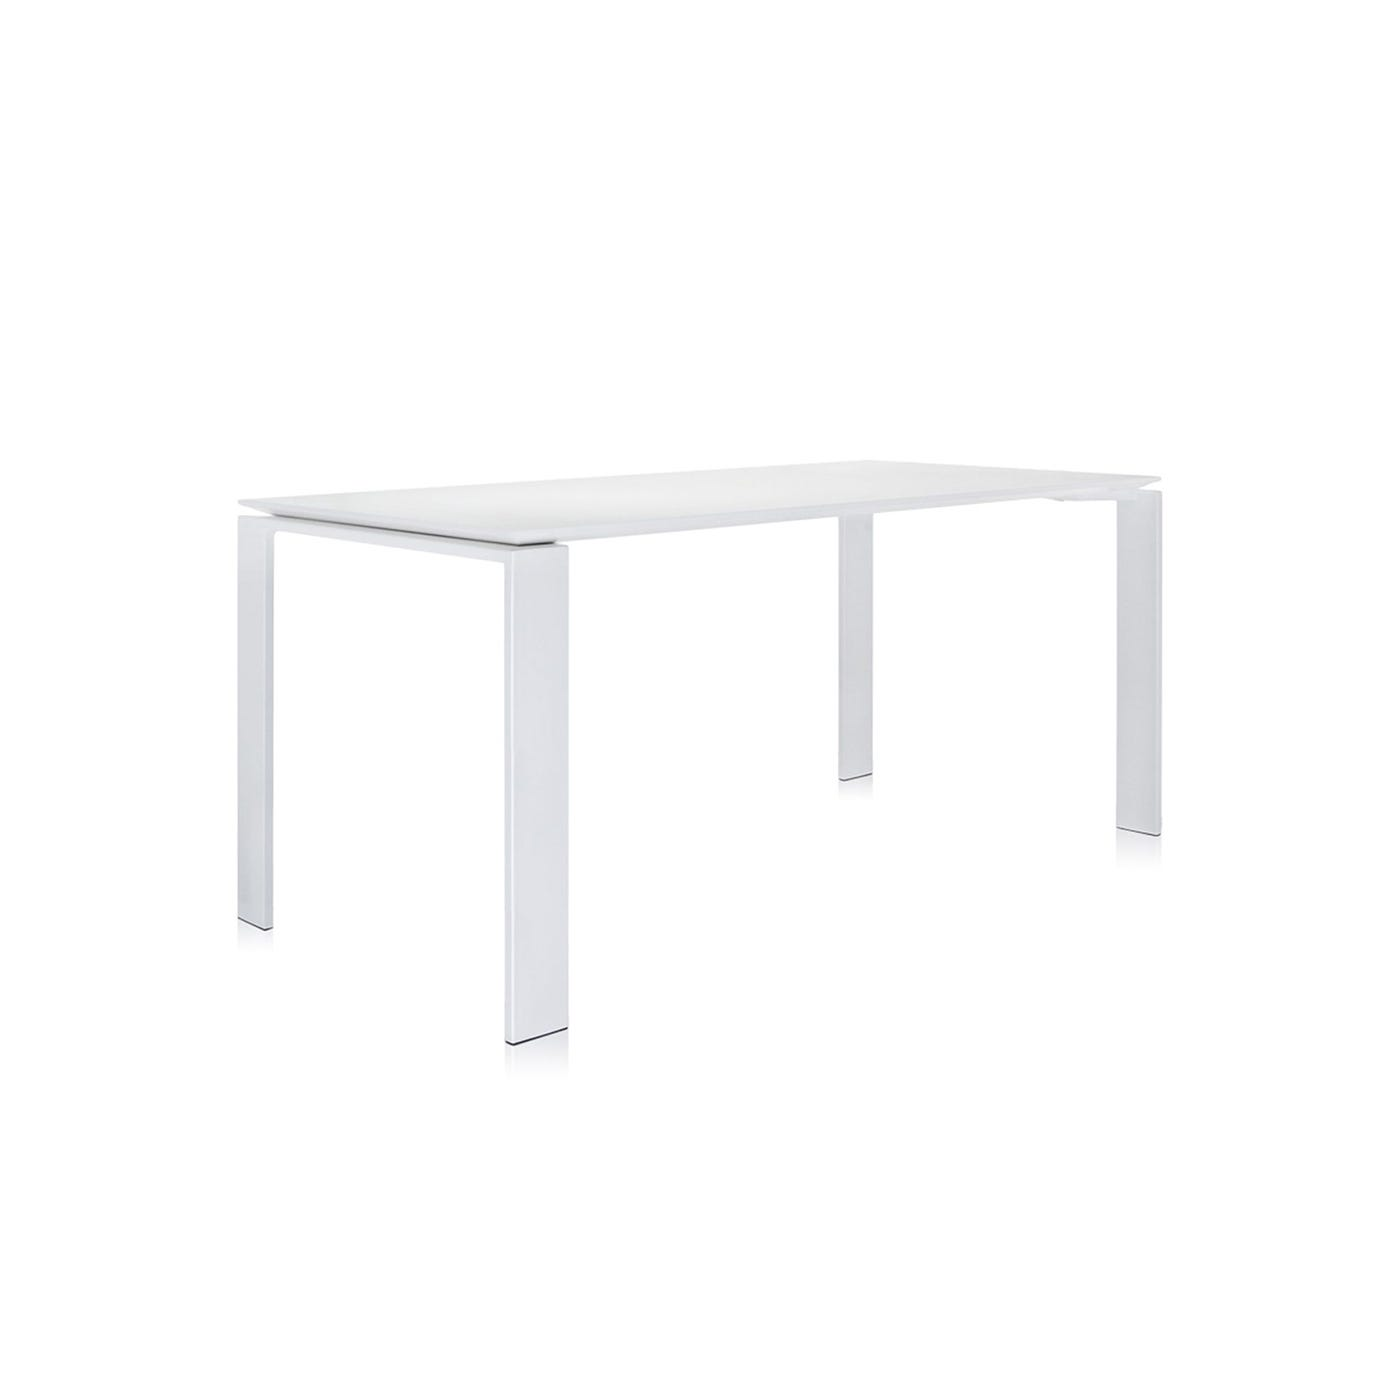 Four Dining Table